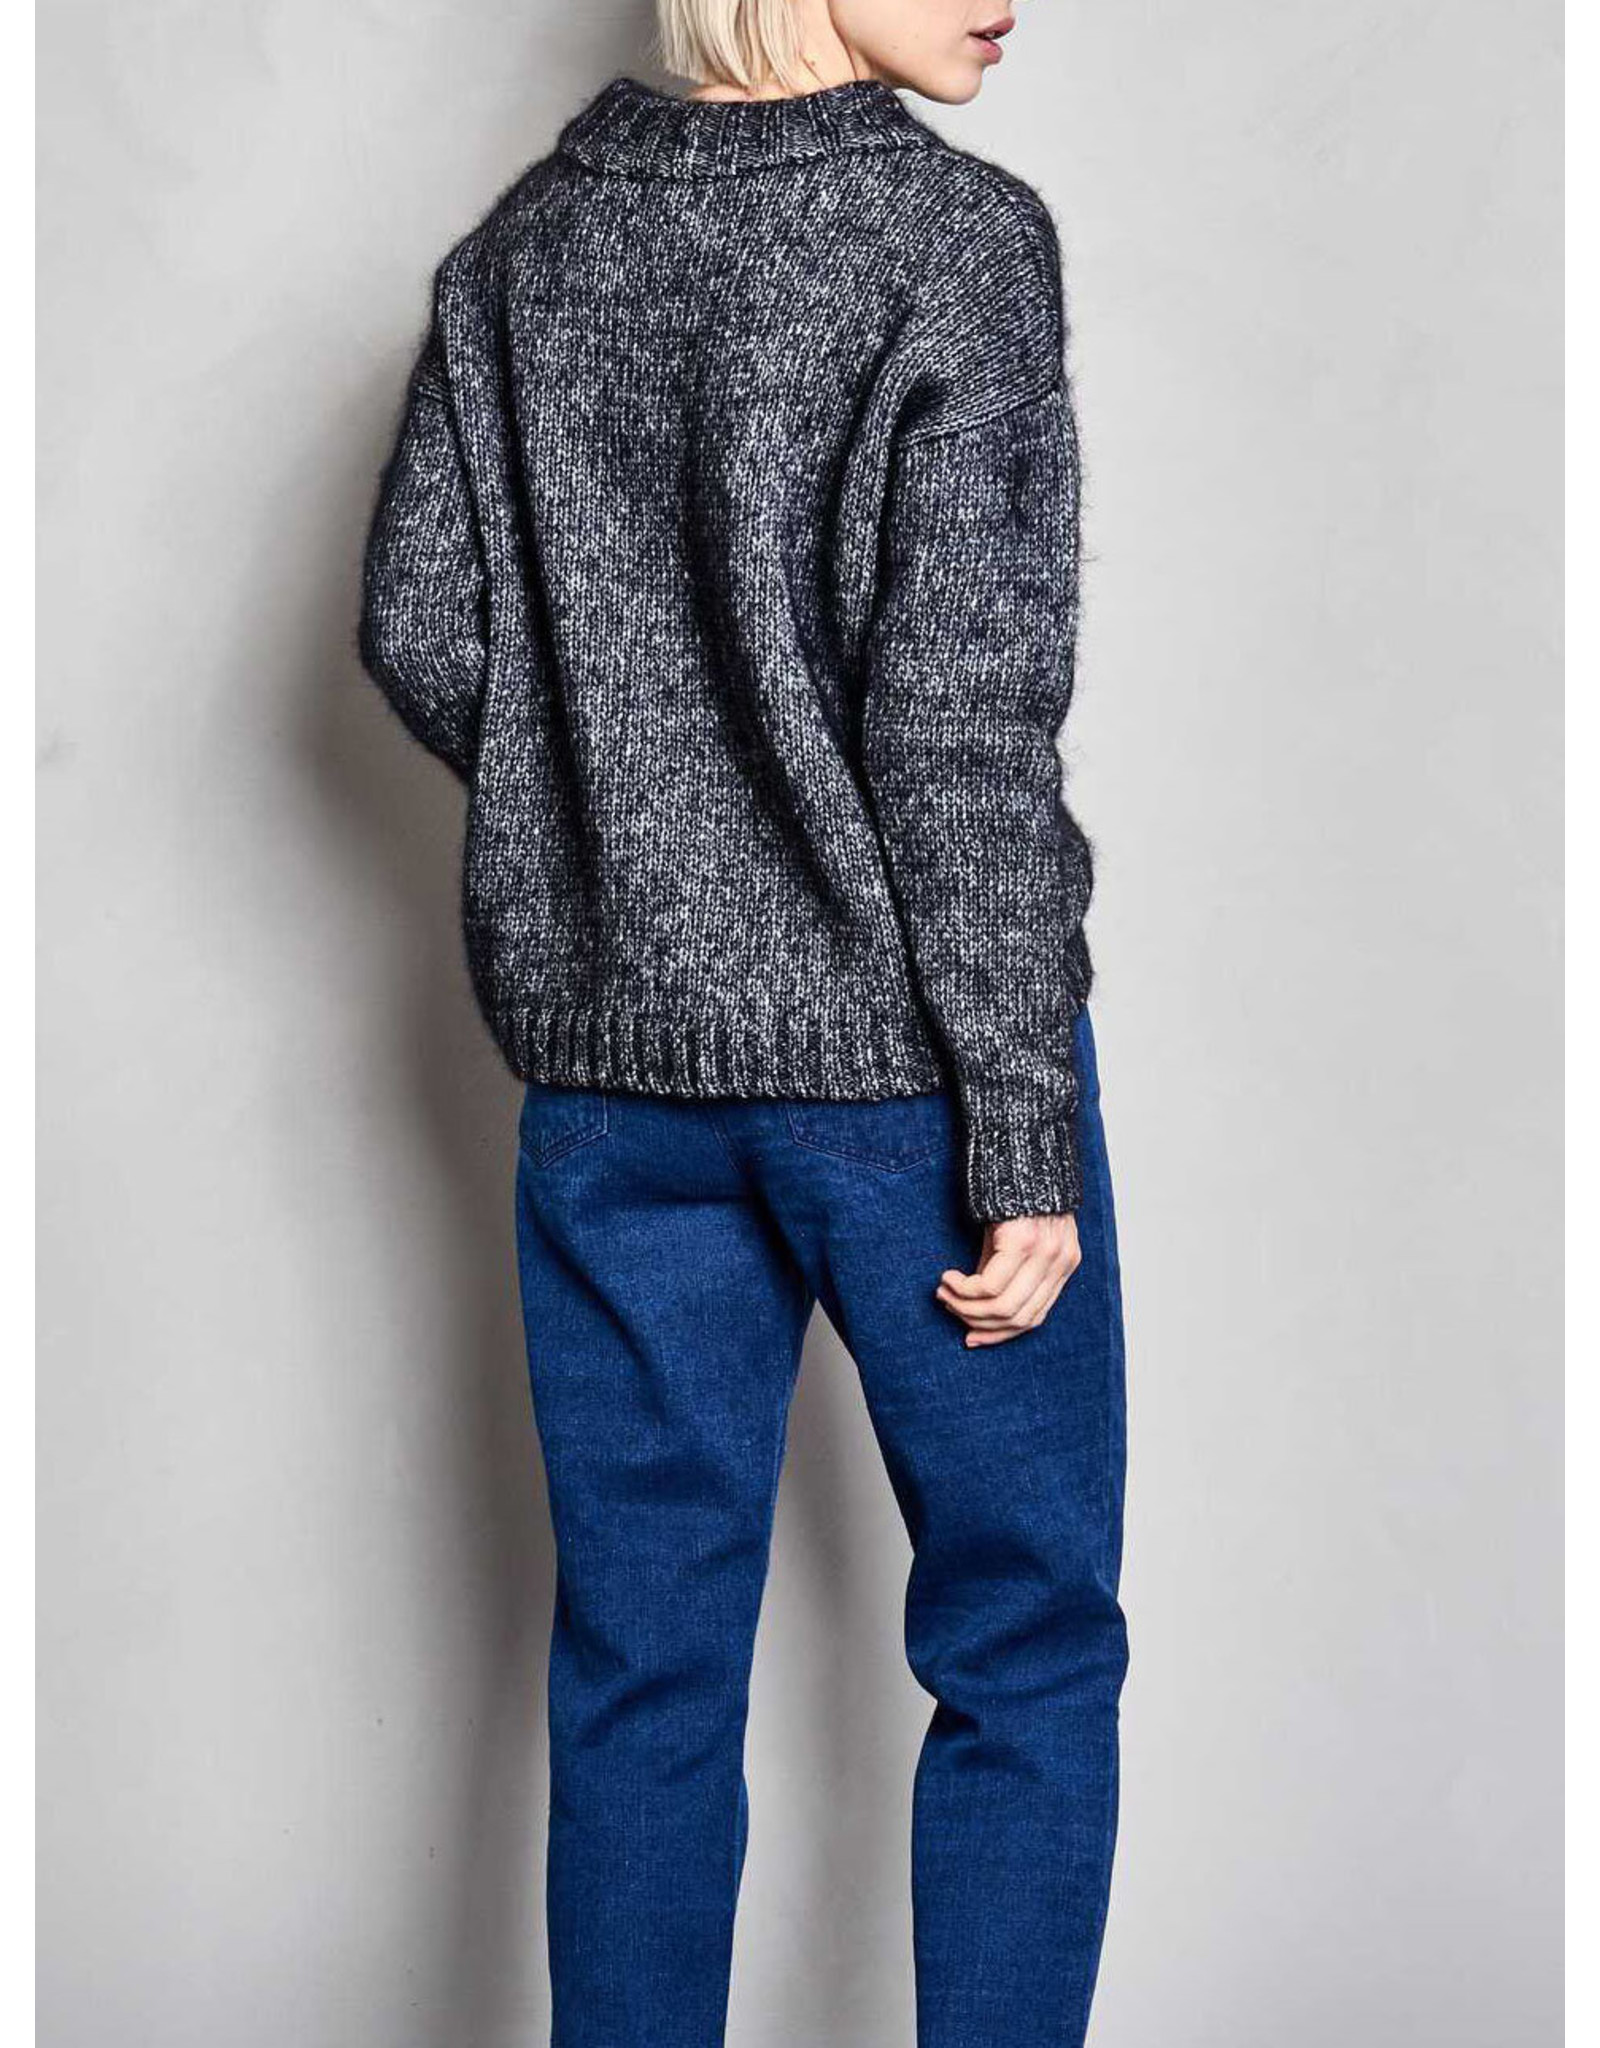 MASKA RAFI - DICKER SWEATER